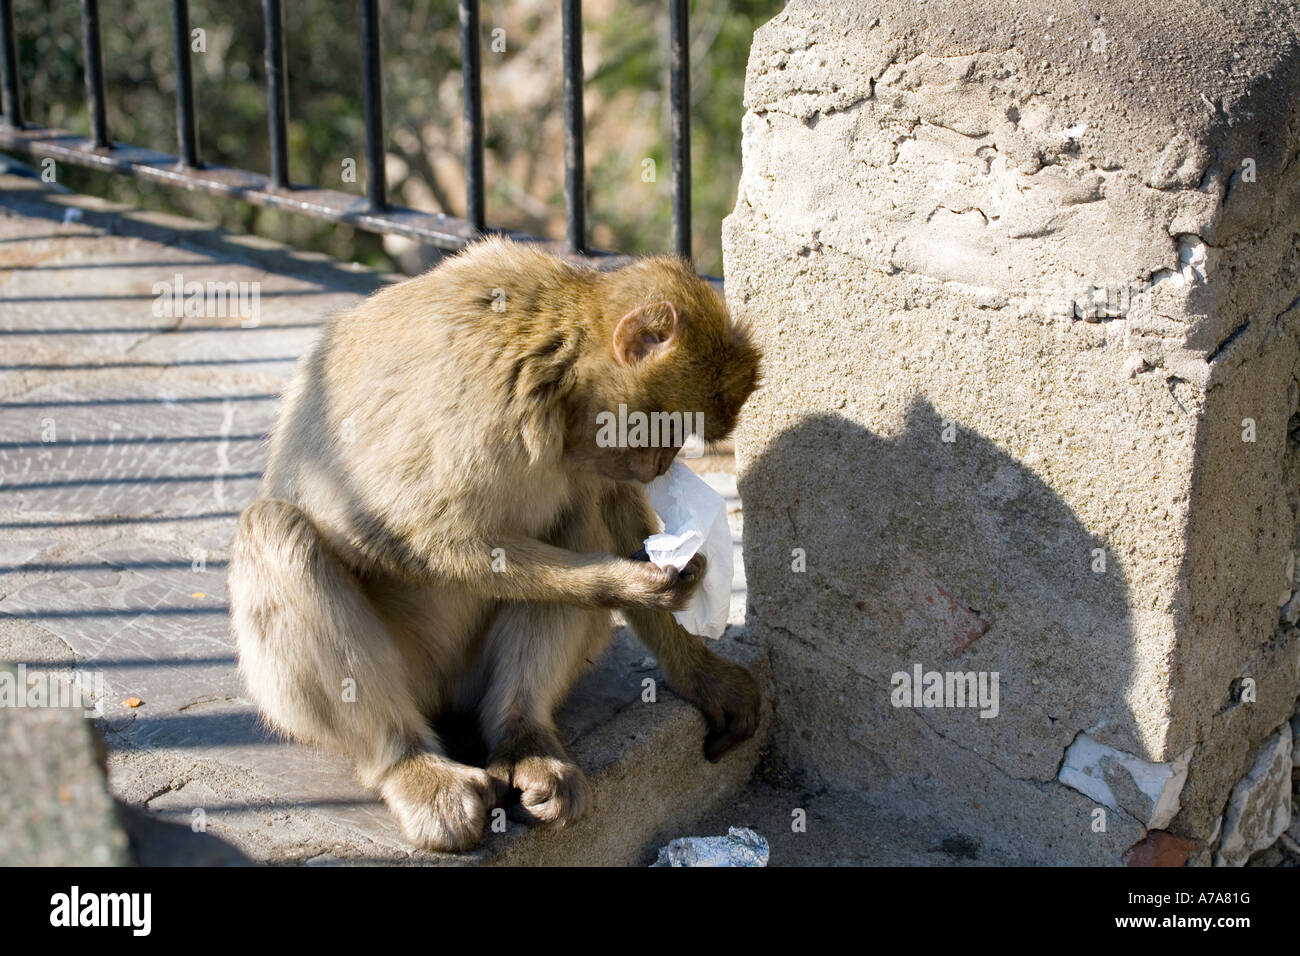 Gibraltar Ape playing with a piece of paper - Stock Image